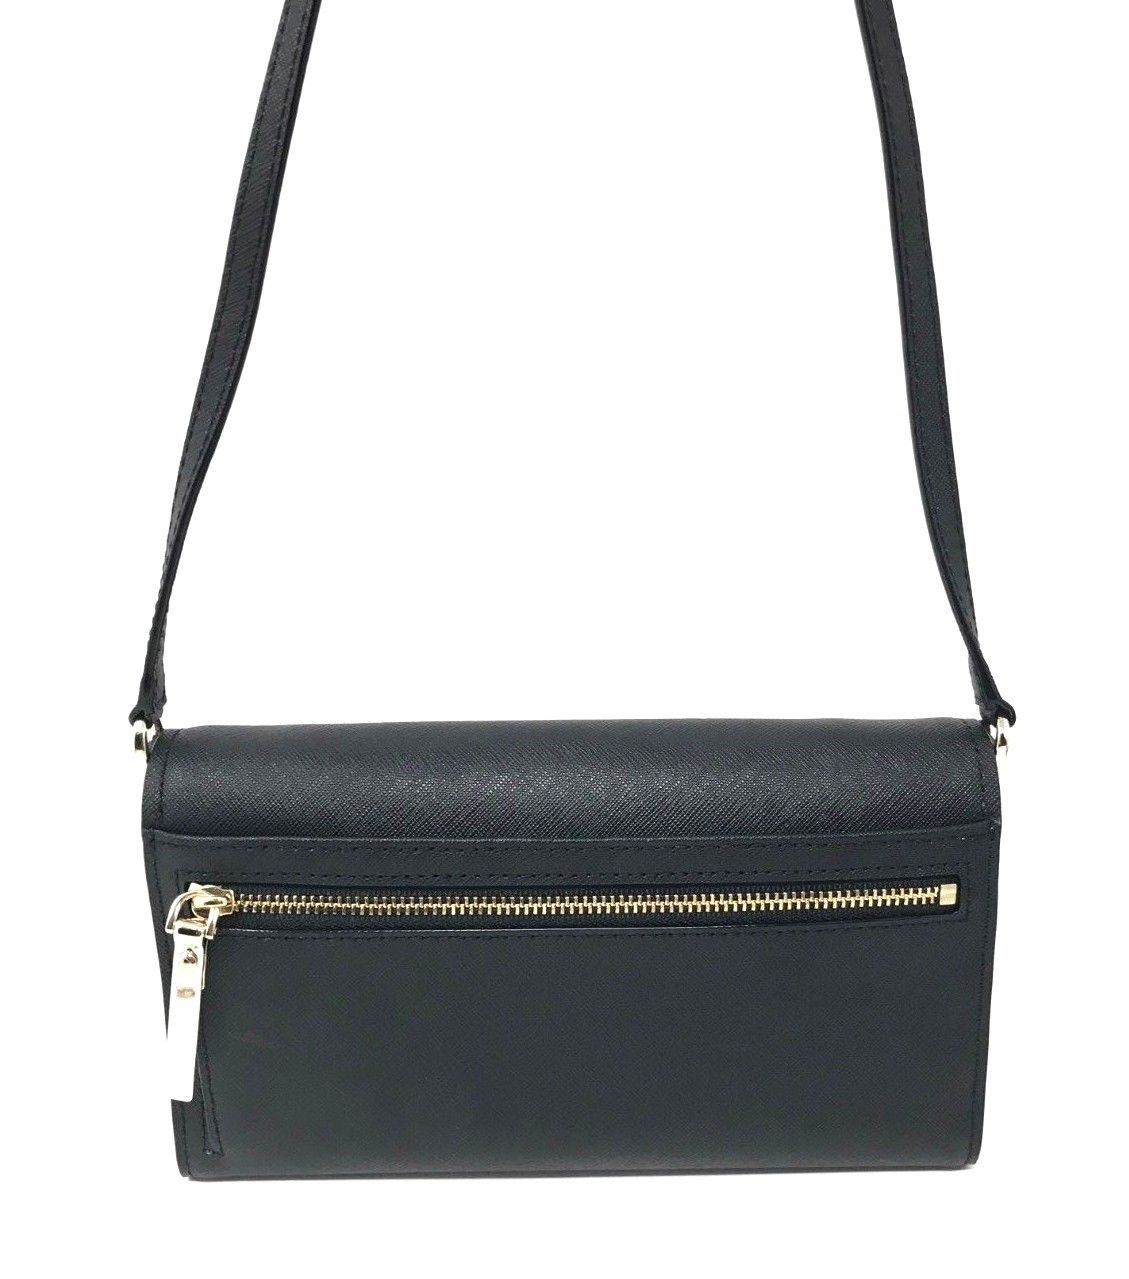 Kate Spade Cameron Street Stormie Black Leather Small Crossbody PWRU5288 $198